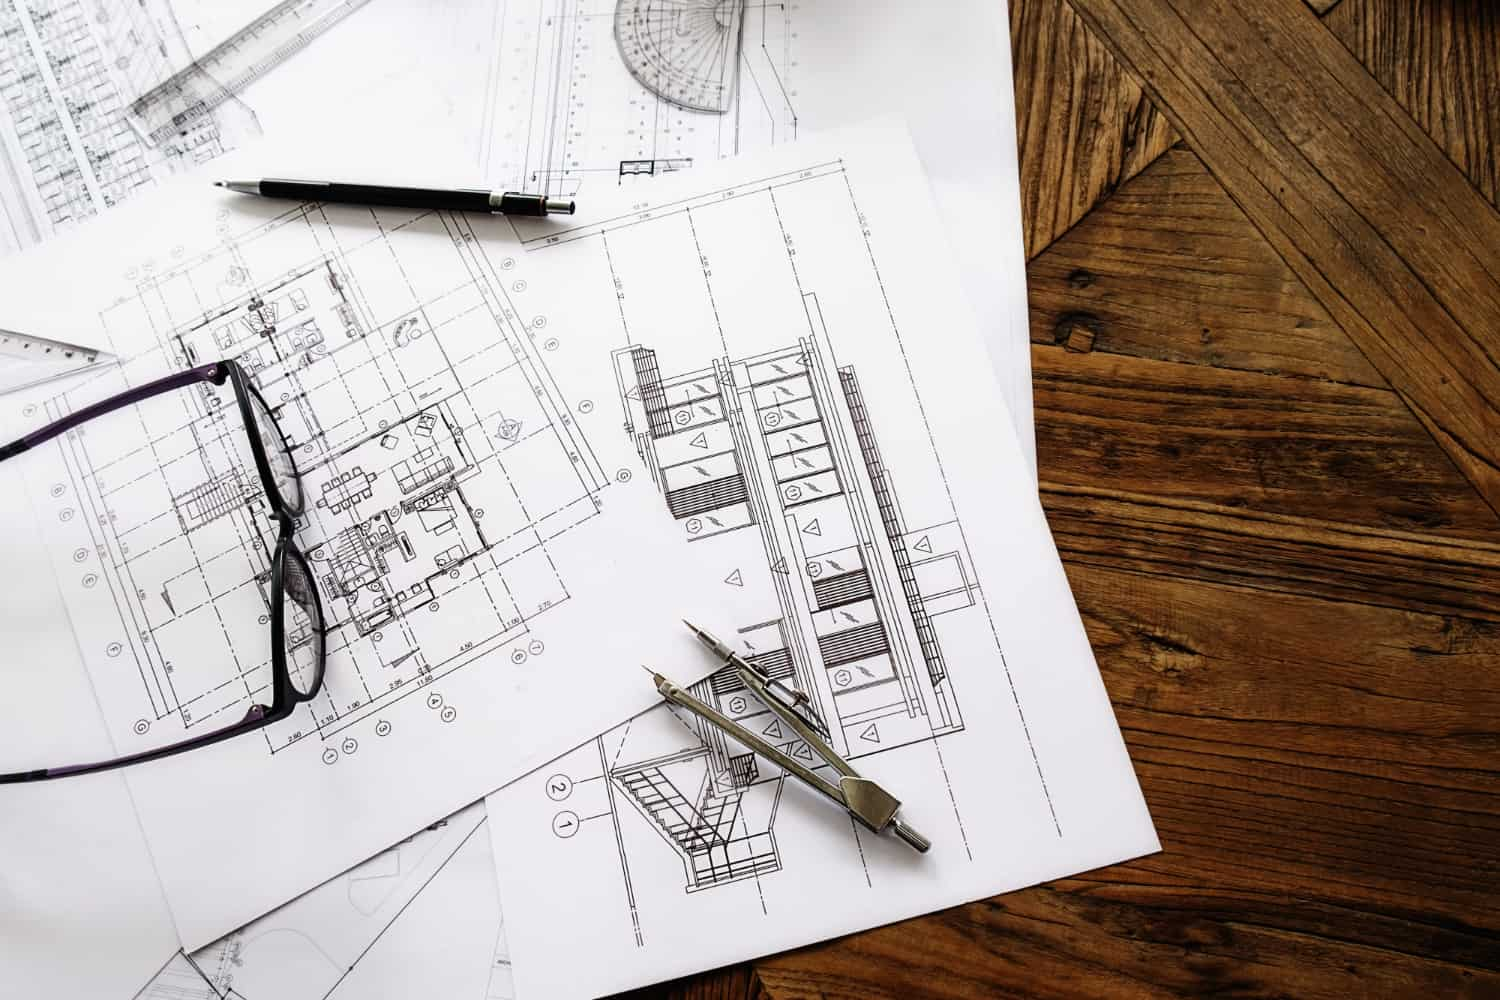 image engineering objects workplace top view construction concept engineering tools vintage tone retro filter effect soft focus selective focus